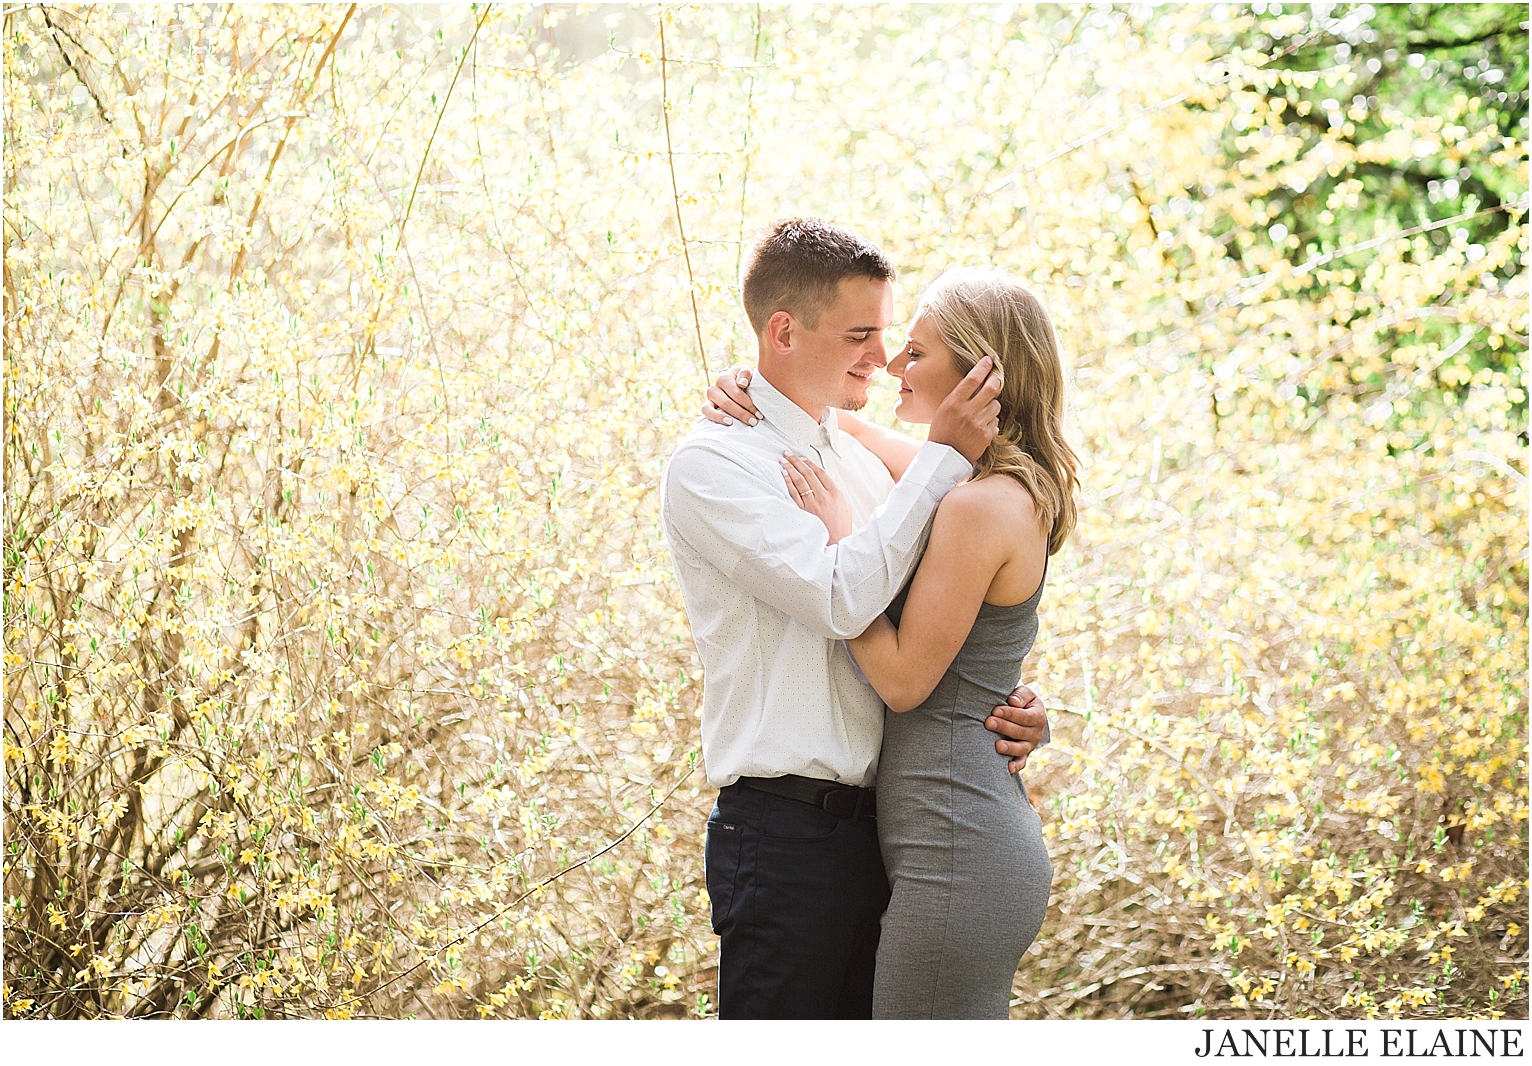 tricia and nate engagement photos-janelle elaine photography-96.jpg